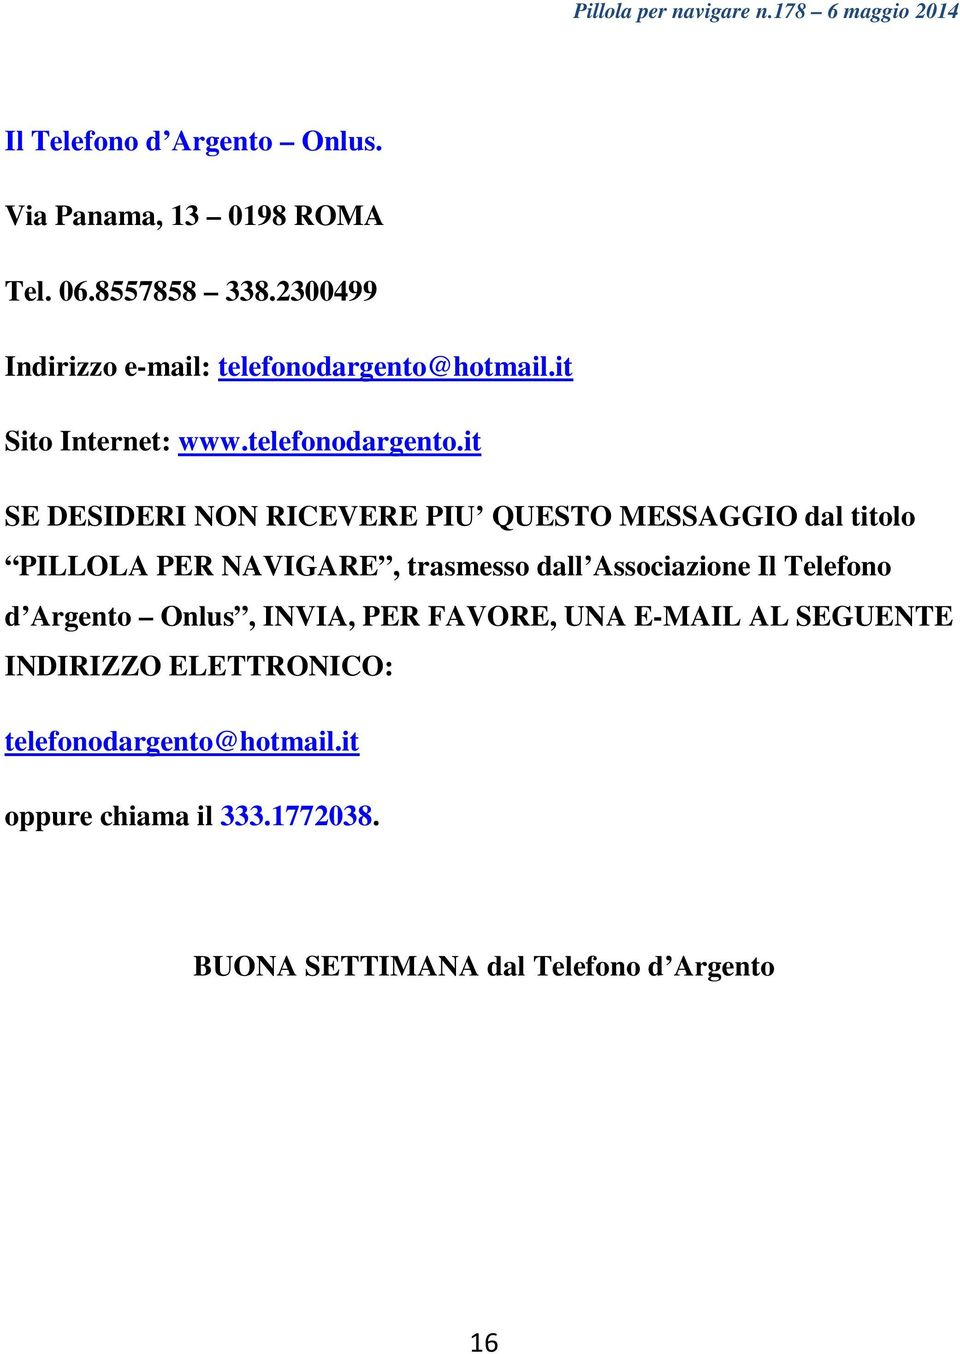 hotmail.it Sito Internet: www.telefonodargento.